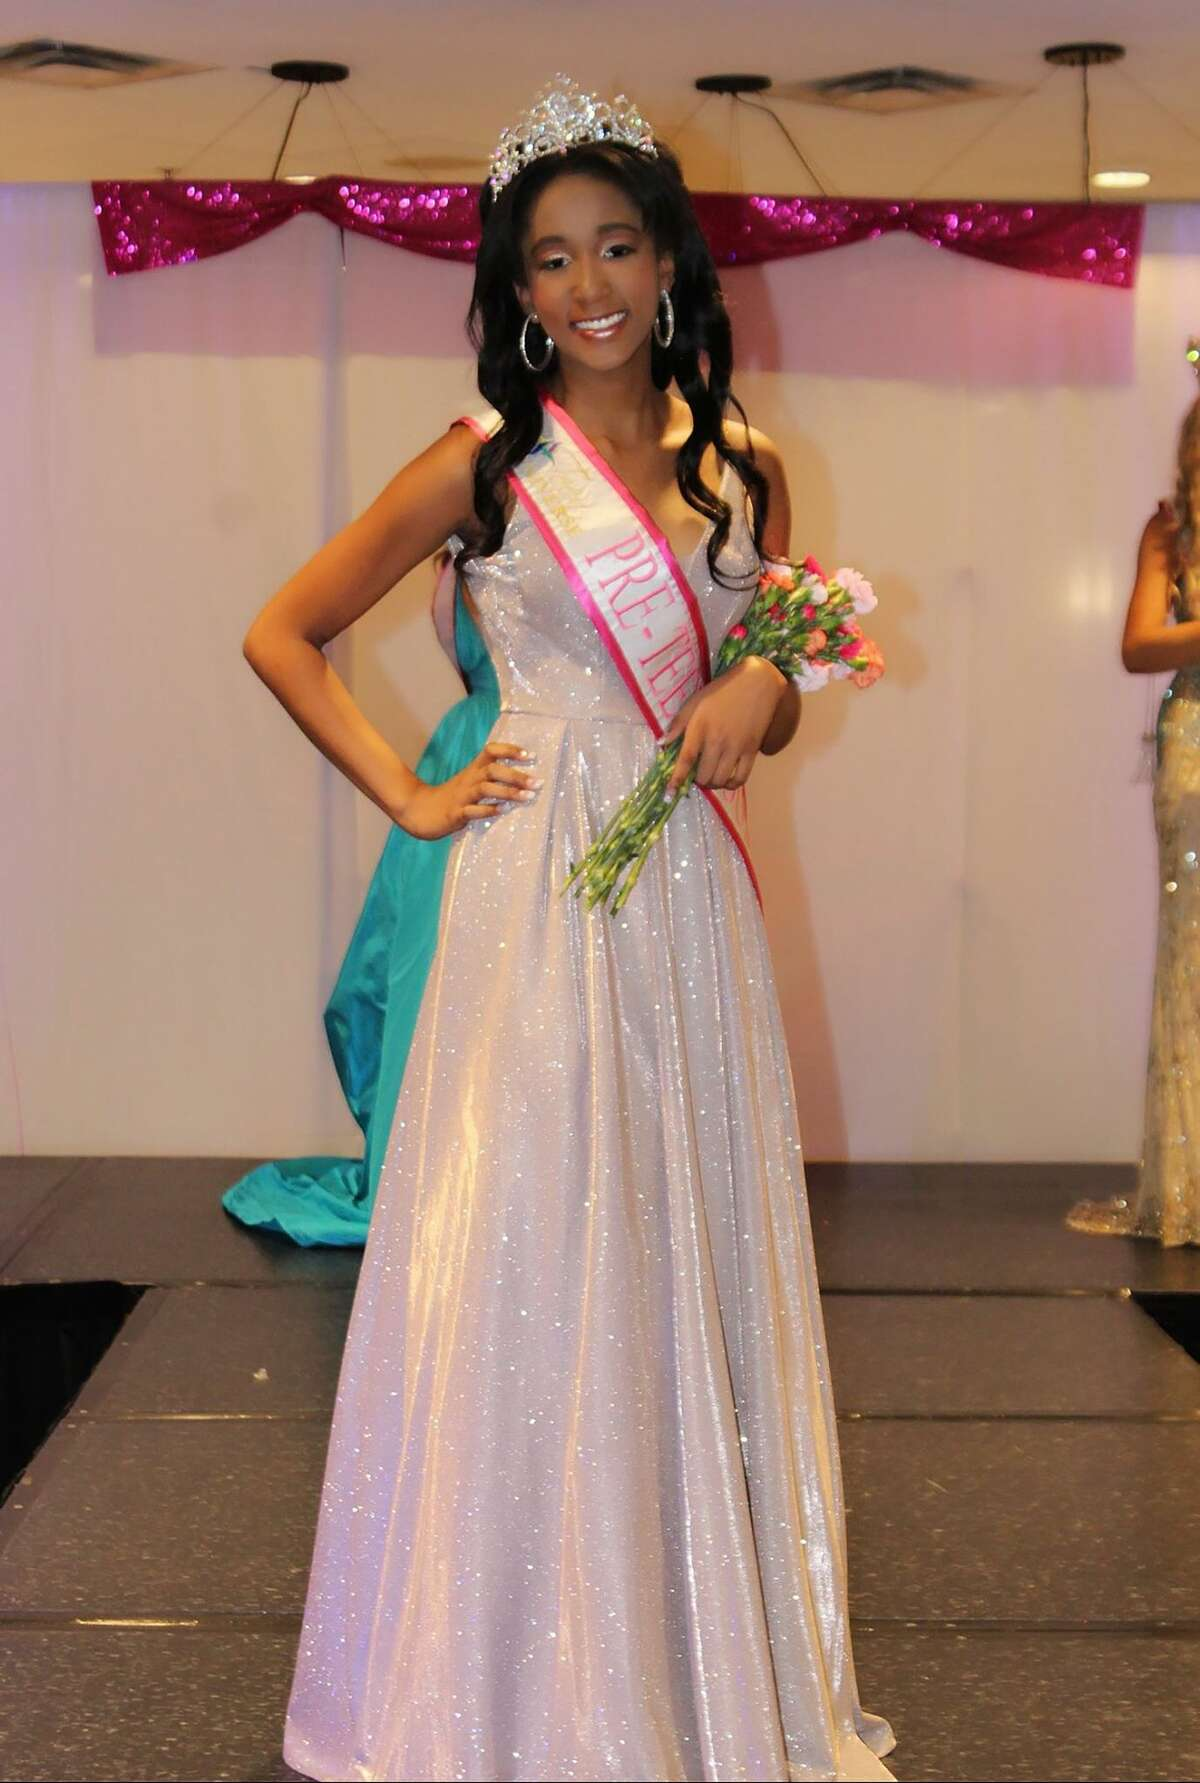 Nicole Mayberry, a high-school freshman, is the first Teen Universe Pre-Teen Texas 2020 winner. She was crowned on May 24.